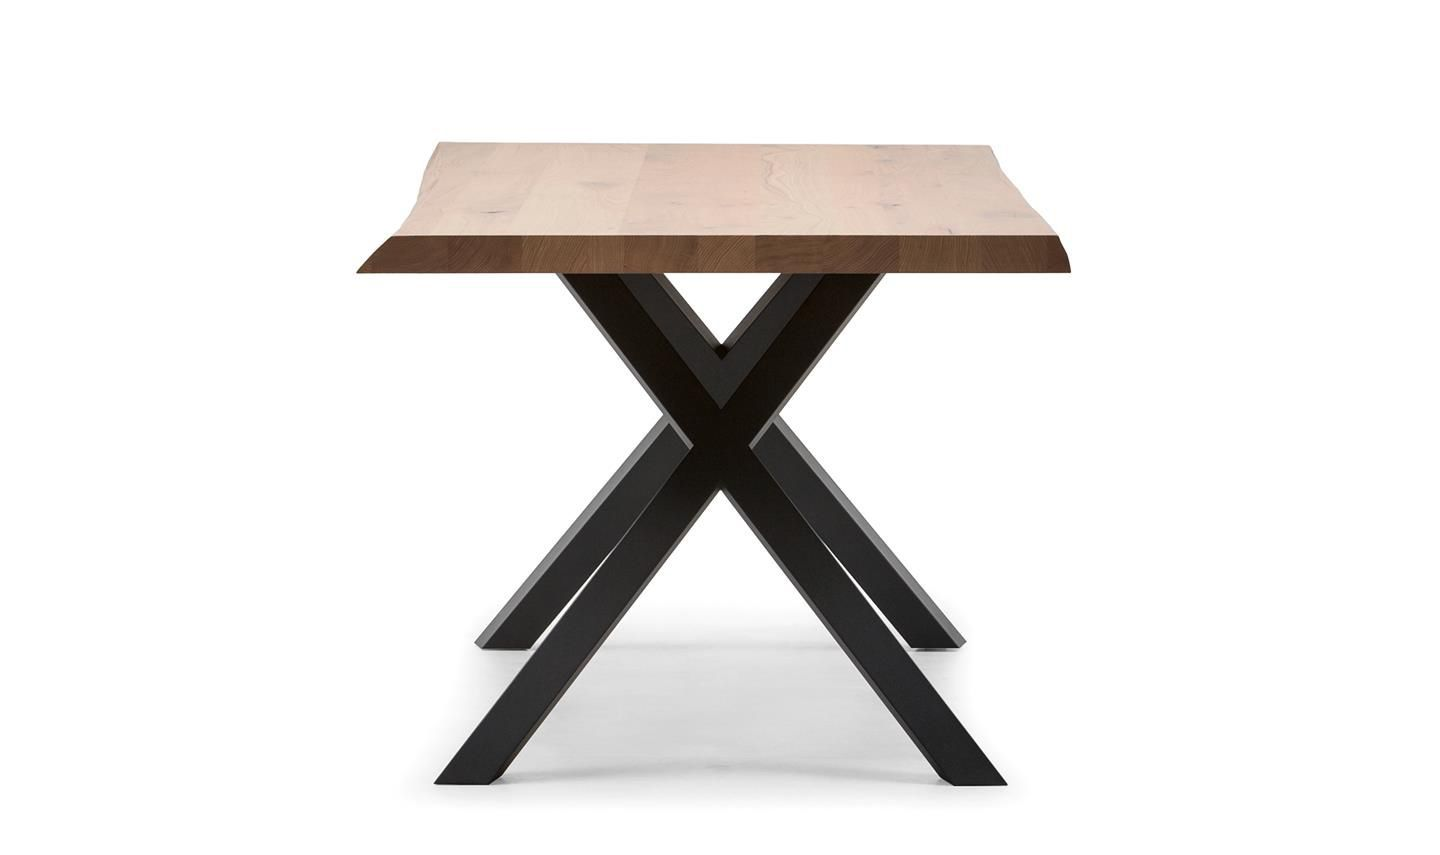 ... Contemporary Table / Wooden / Metal / Rectangular BOARD By R.D.A. Alf  Uno